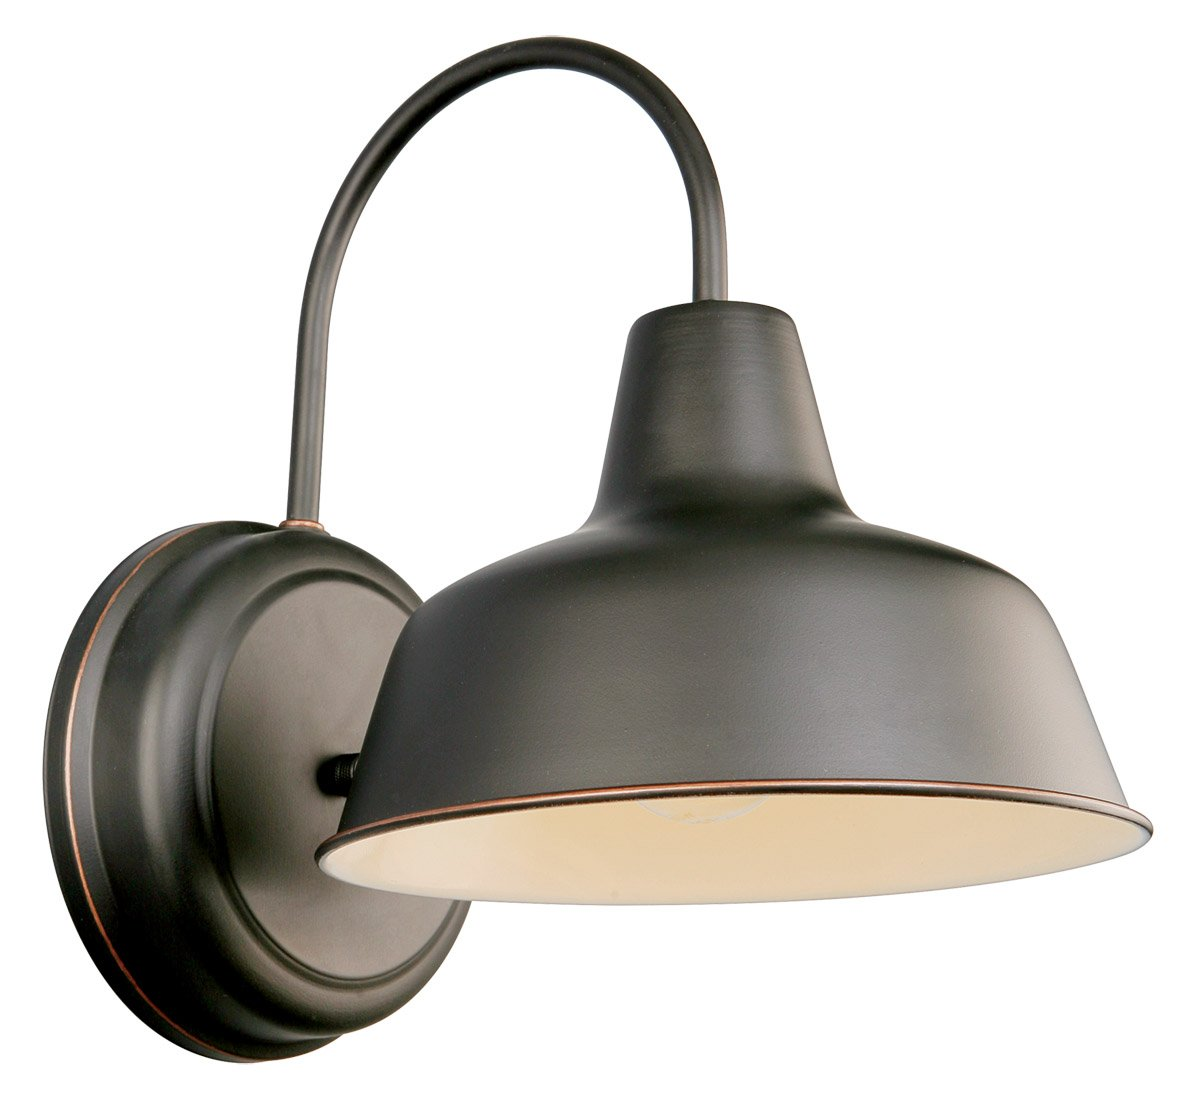 Design House 519504 Mason 1 Light Wall Light, Oil Rubbed Bronze ...